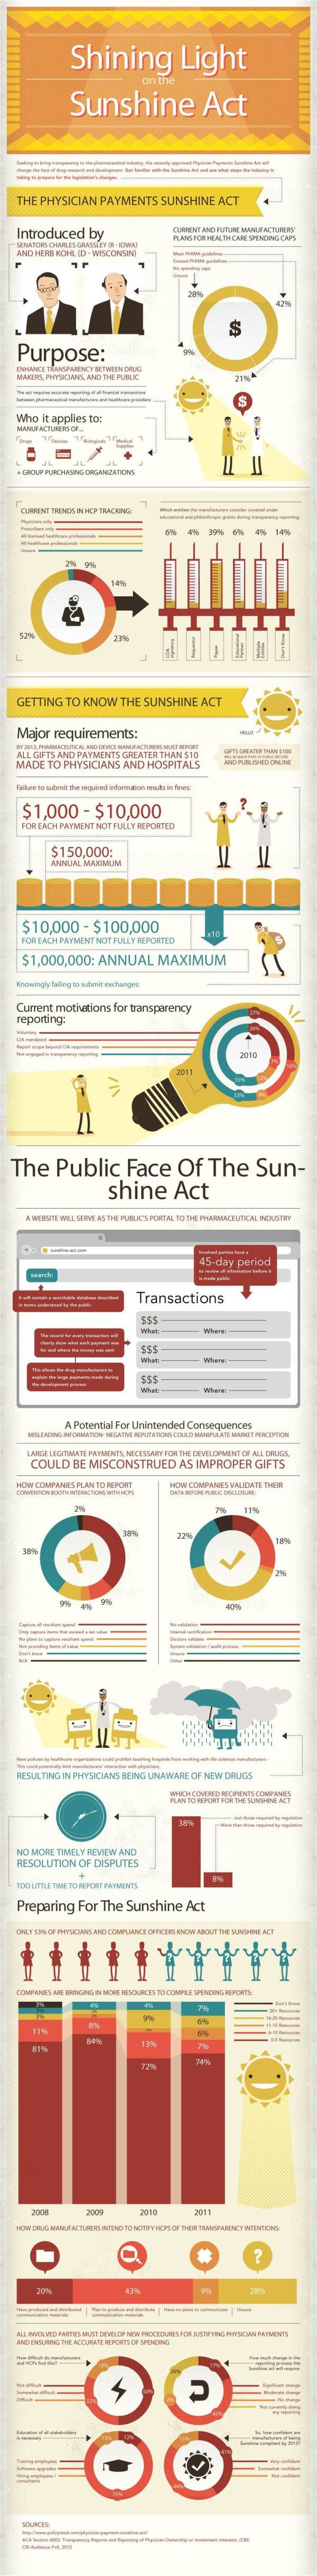 Pharma Compliance Digital CRM Marketing Transparence DMOS sunshine act infographie1 The State of Sunshine